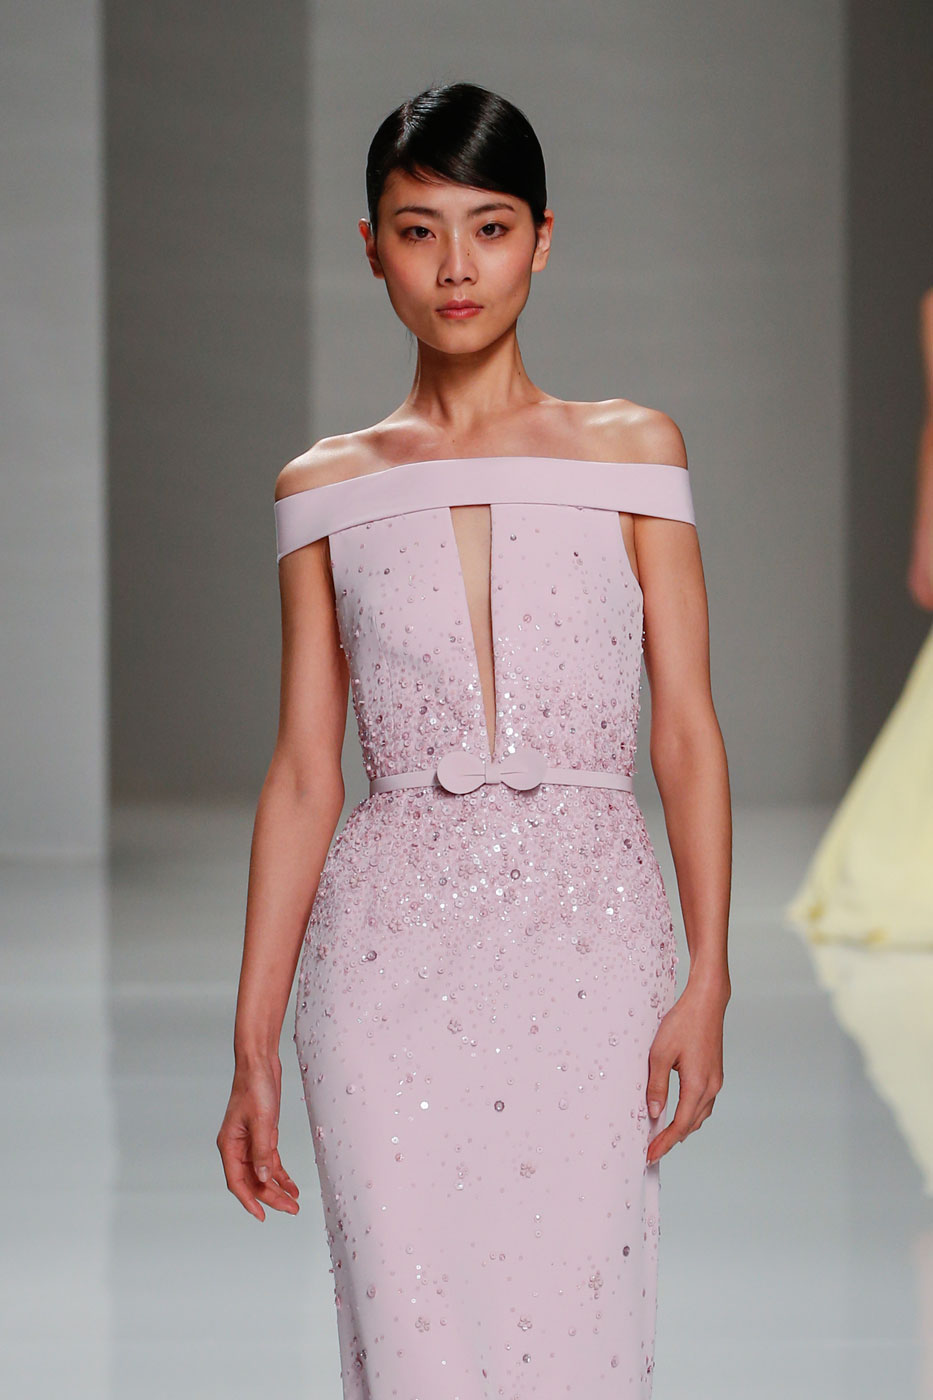 Georges-Hobeika-fashion-runway-show-haute-couture-paris-spring-2015-the-impression-26